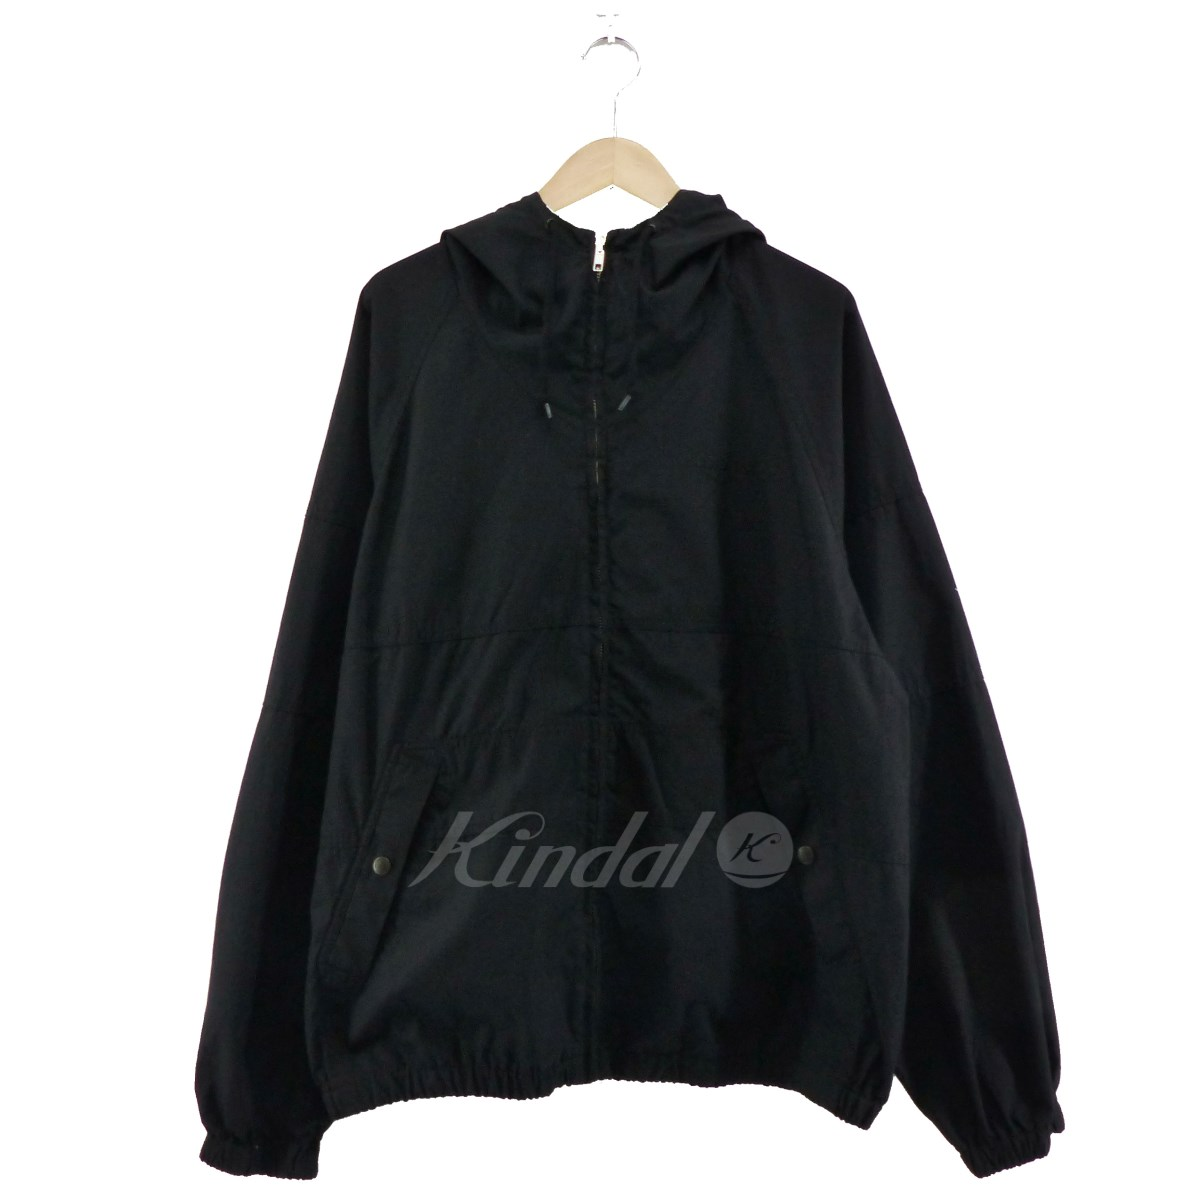 【中古】SUPREME 2018SS Cotton Hooded Raglan Jacket ブラック サイズ:L 【160519】(シュプリーム)